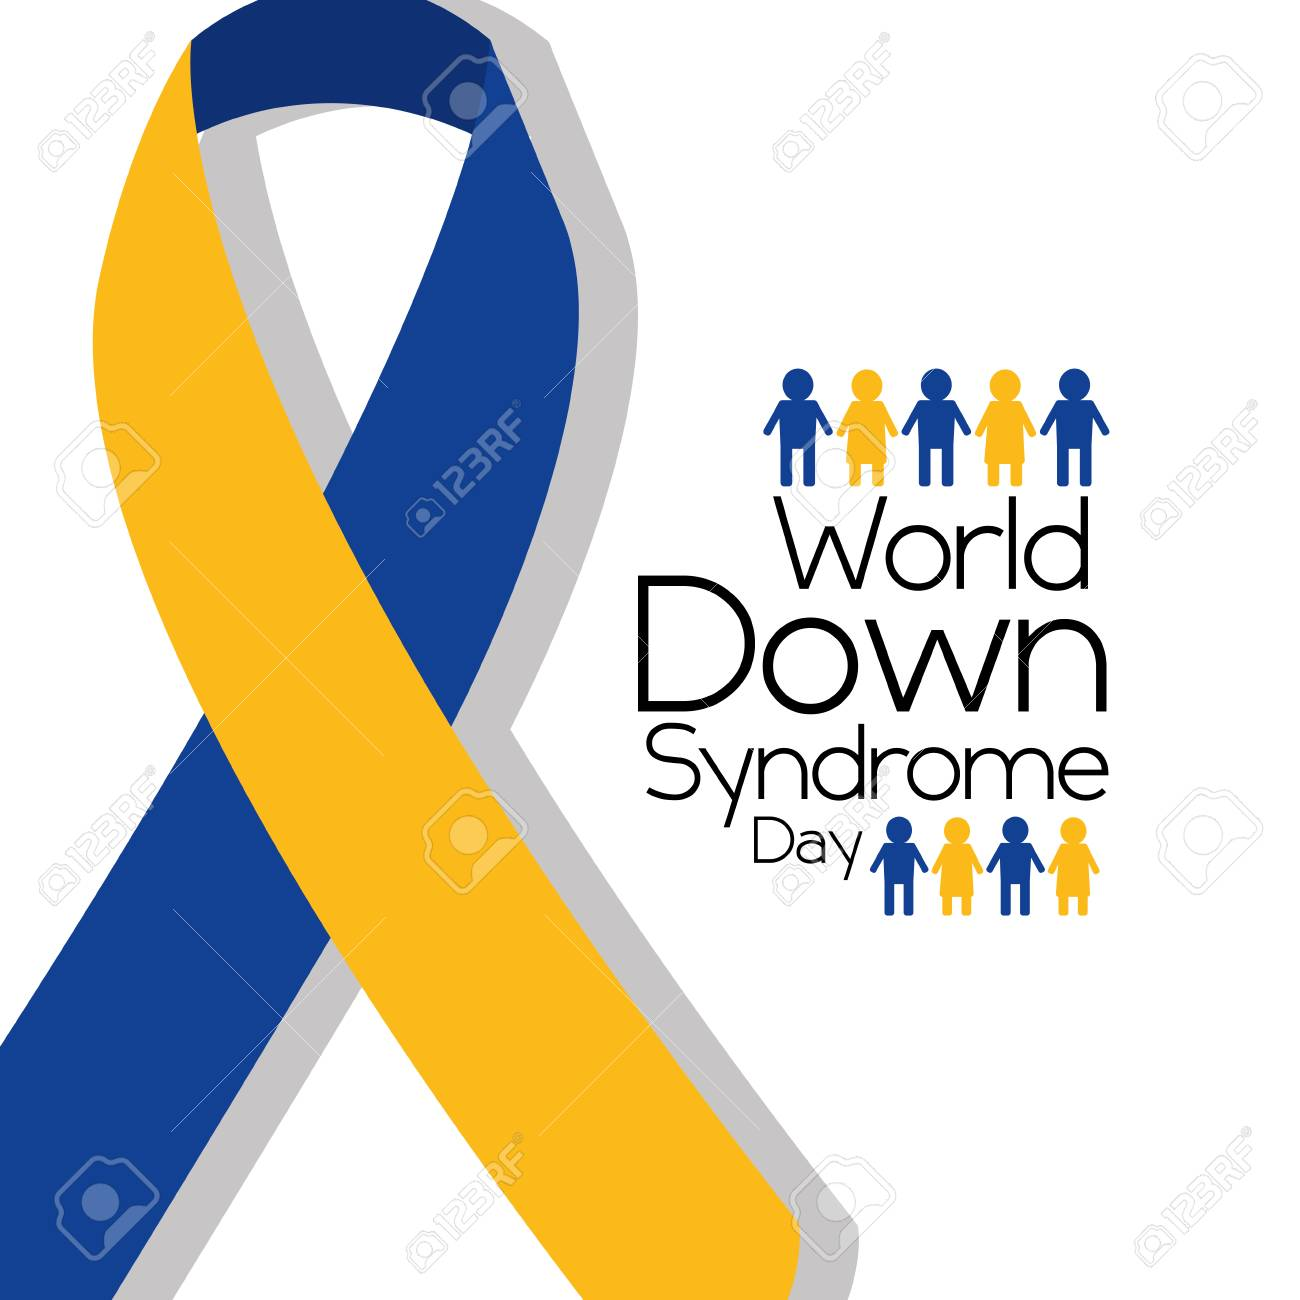 World Down Syndrome Day Awareness Ribbon People Royalty Free